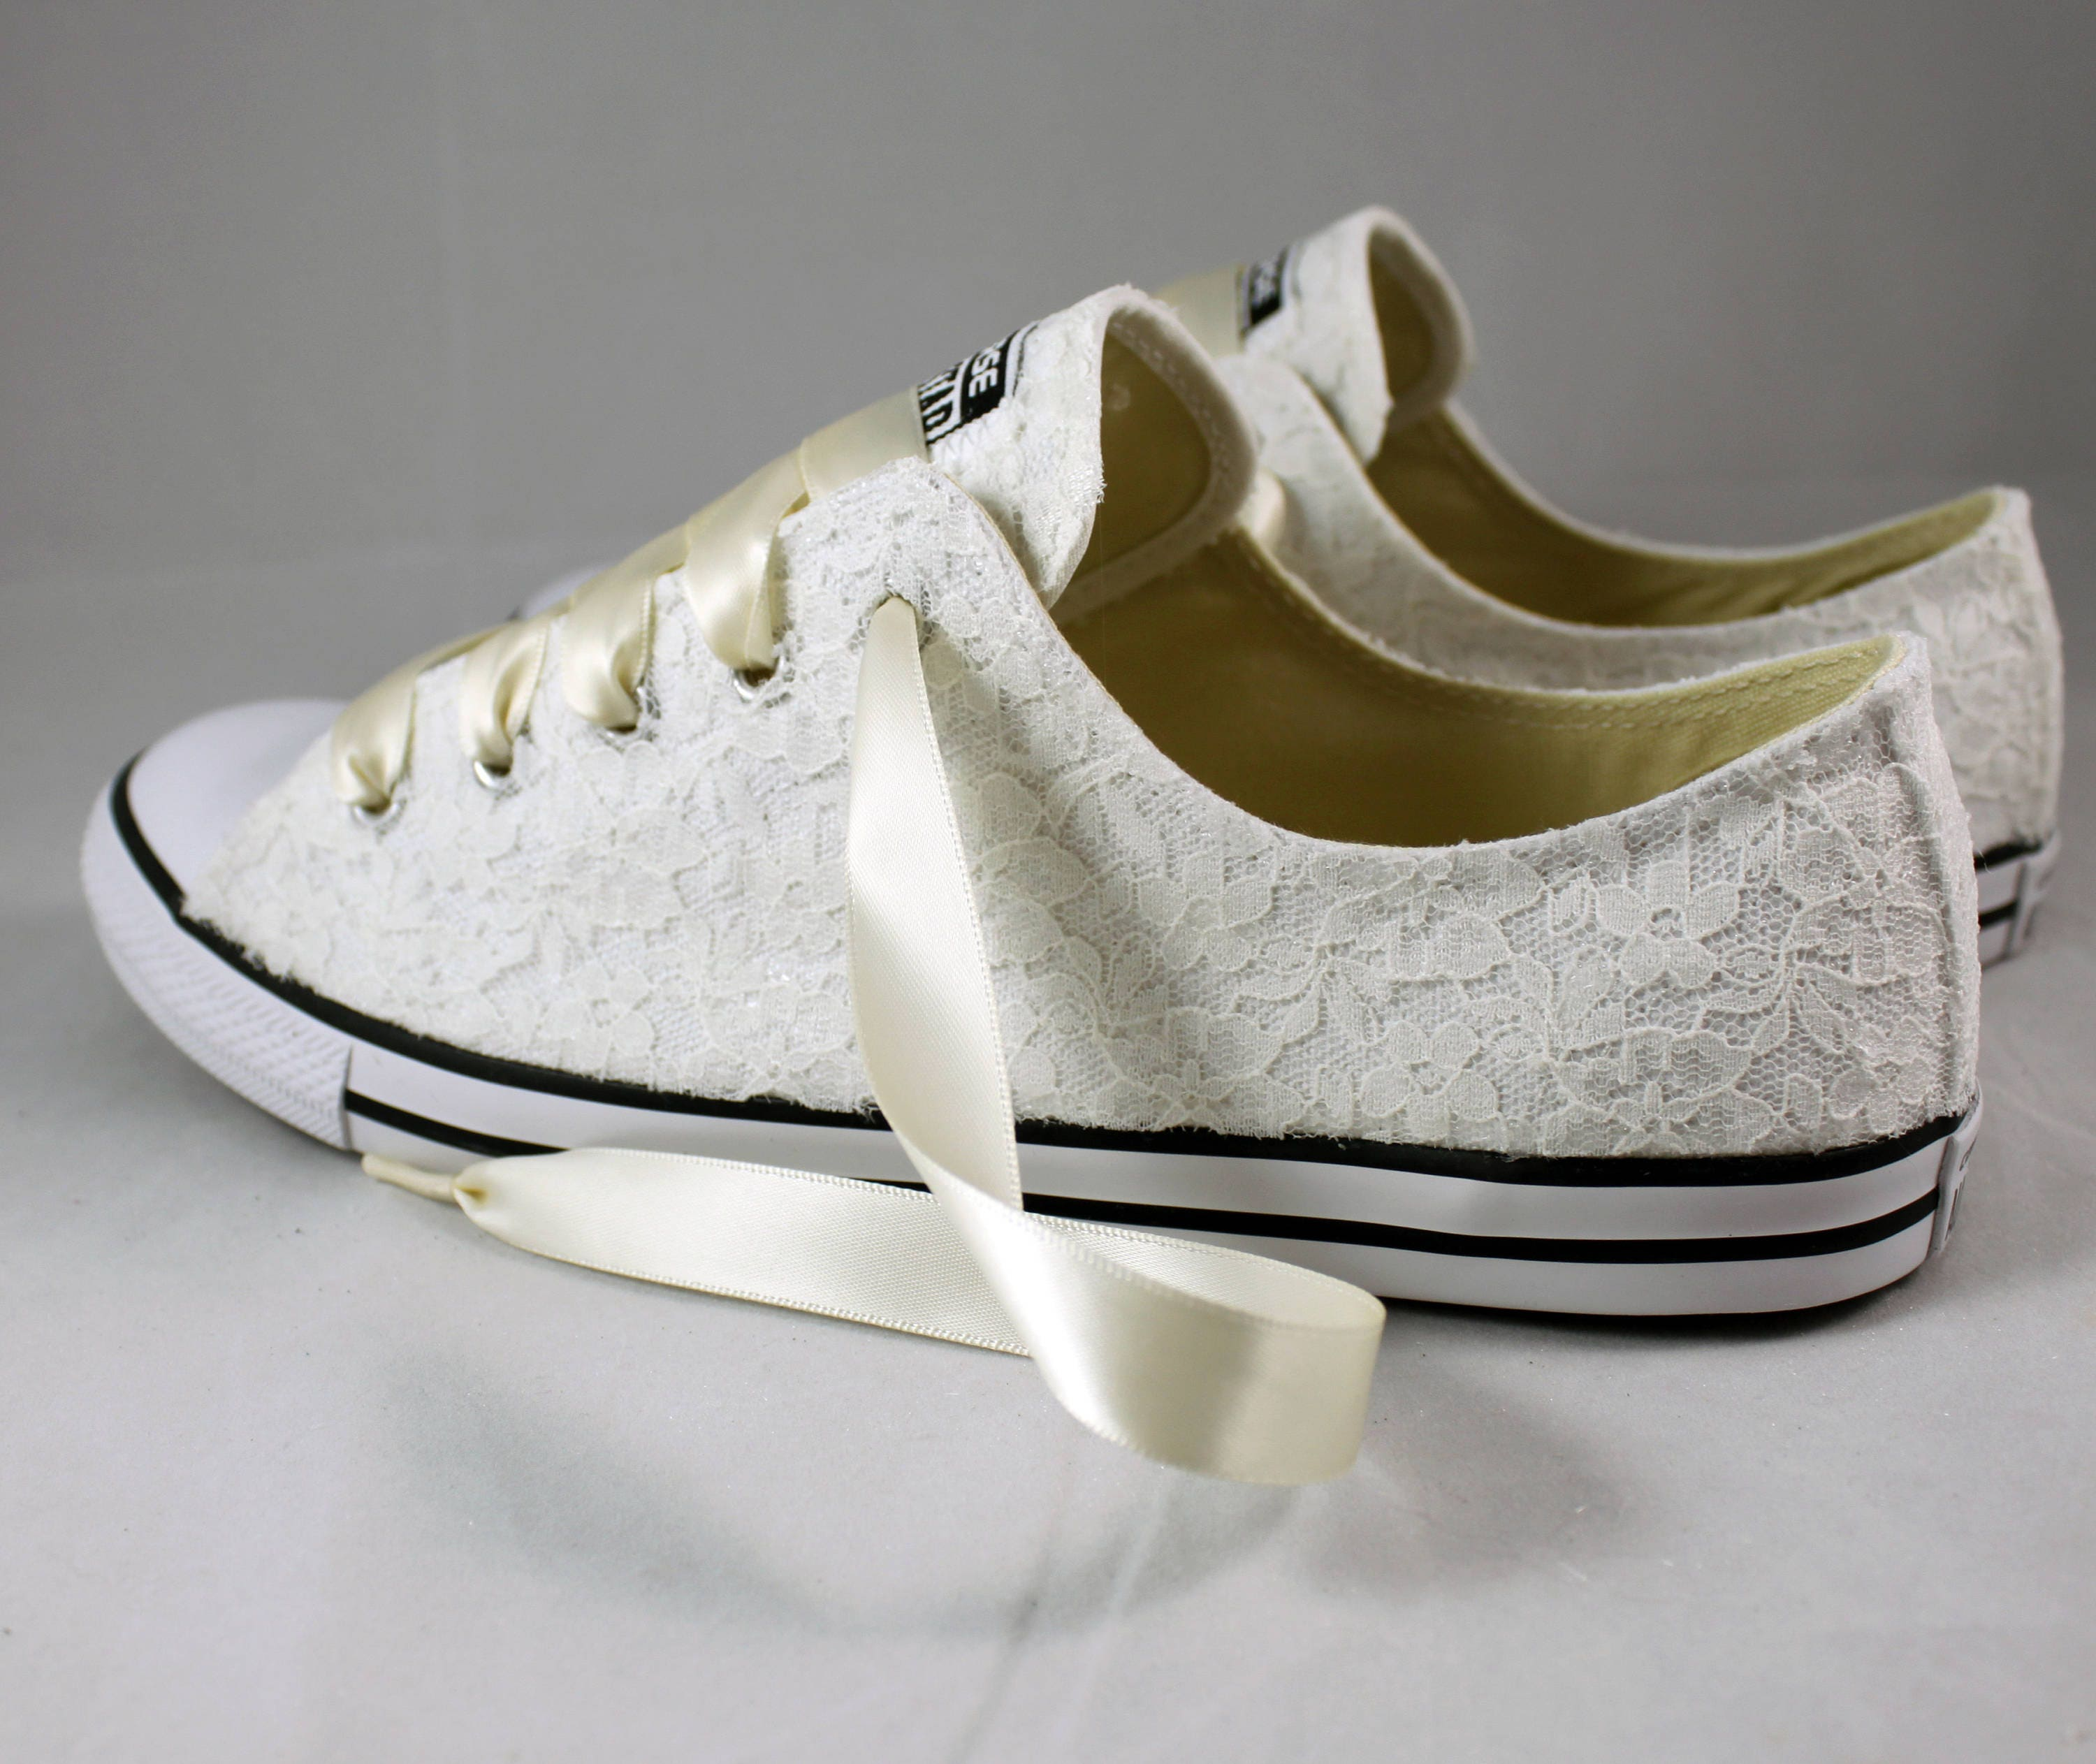 wedding shoes for bride ivory ivory lace wedding converse ivory lace bridal converses 1110